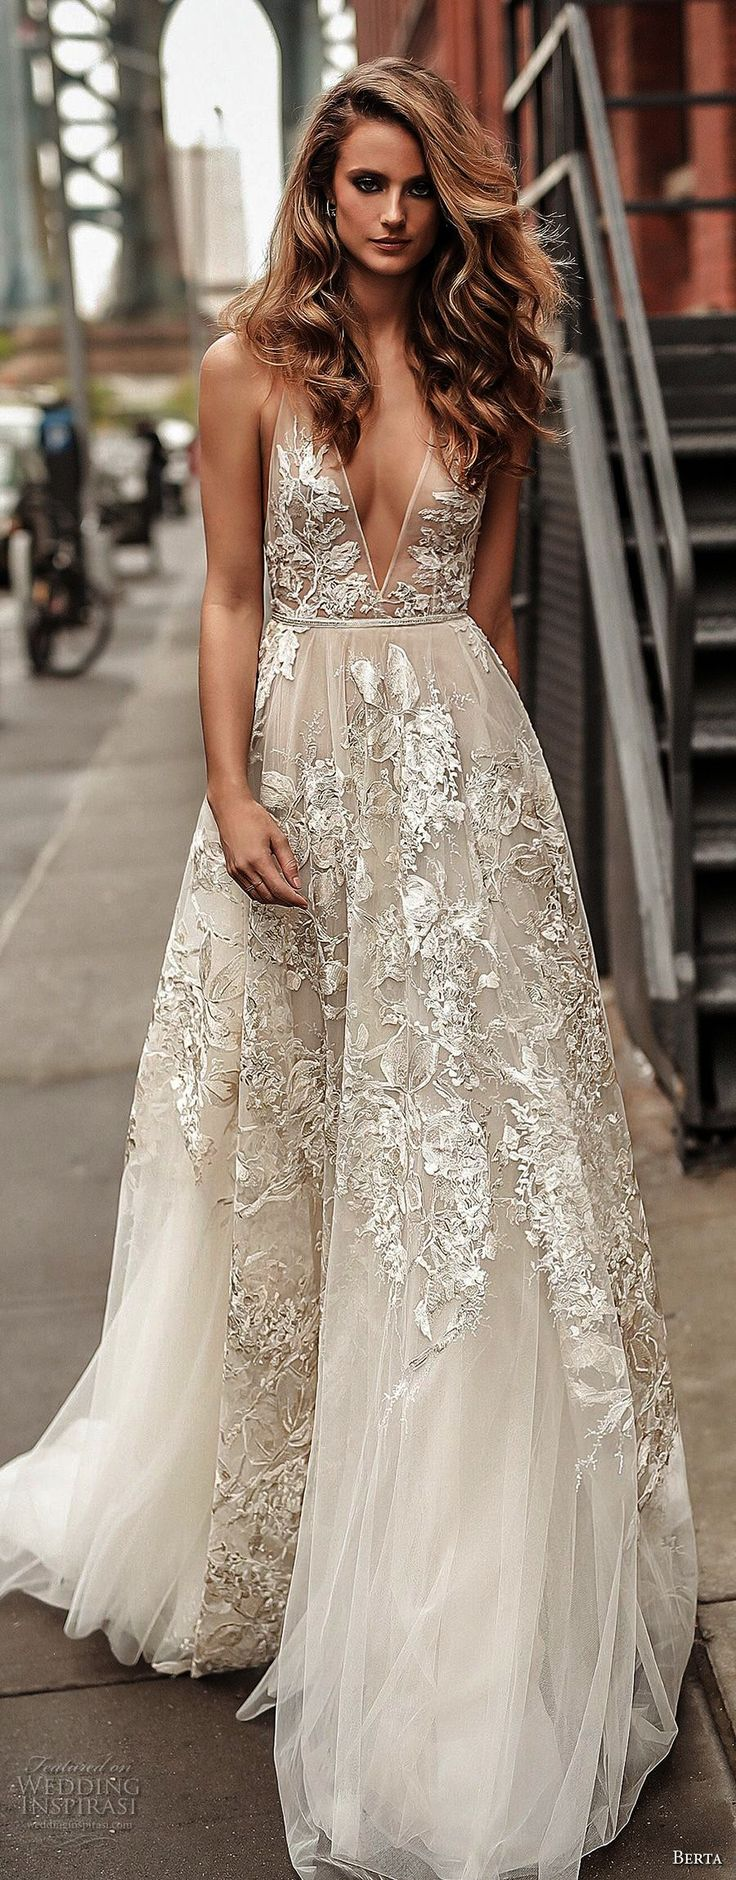 best Hitched images on Pinterest  Bridal gowns Wedding frocks